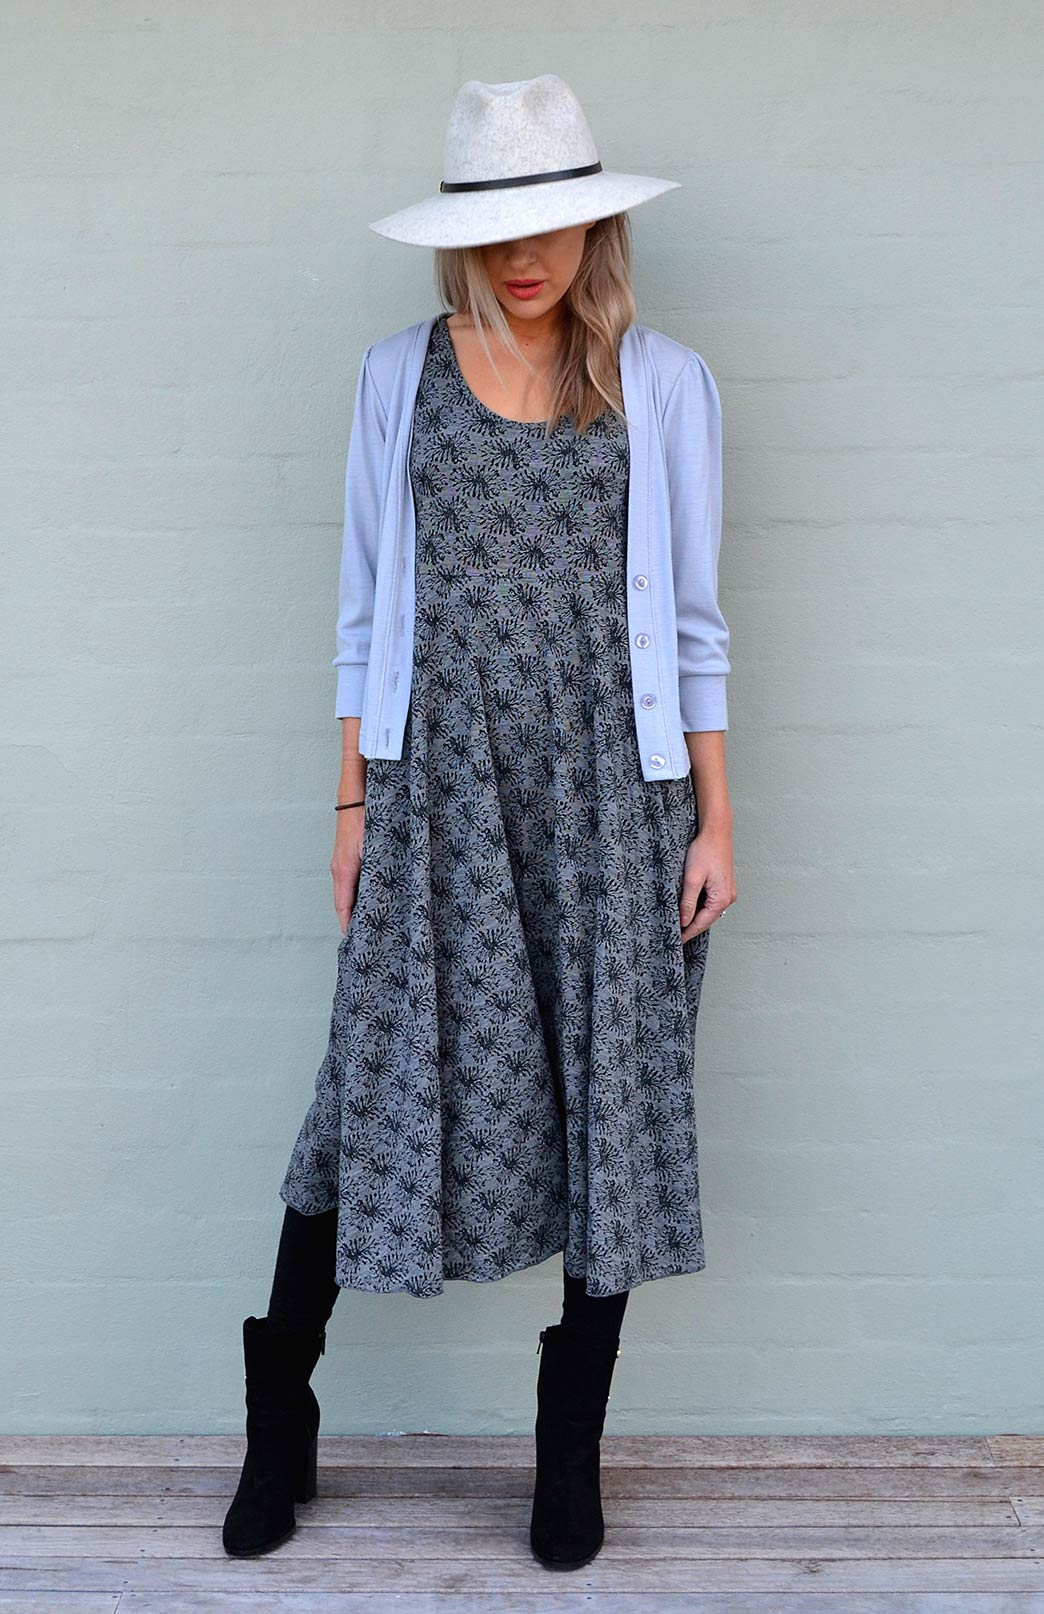 Fan Dress - Women's Patterned Merino Wool Sleeveless Dress - Smitten Merino Tasmania Australia